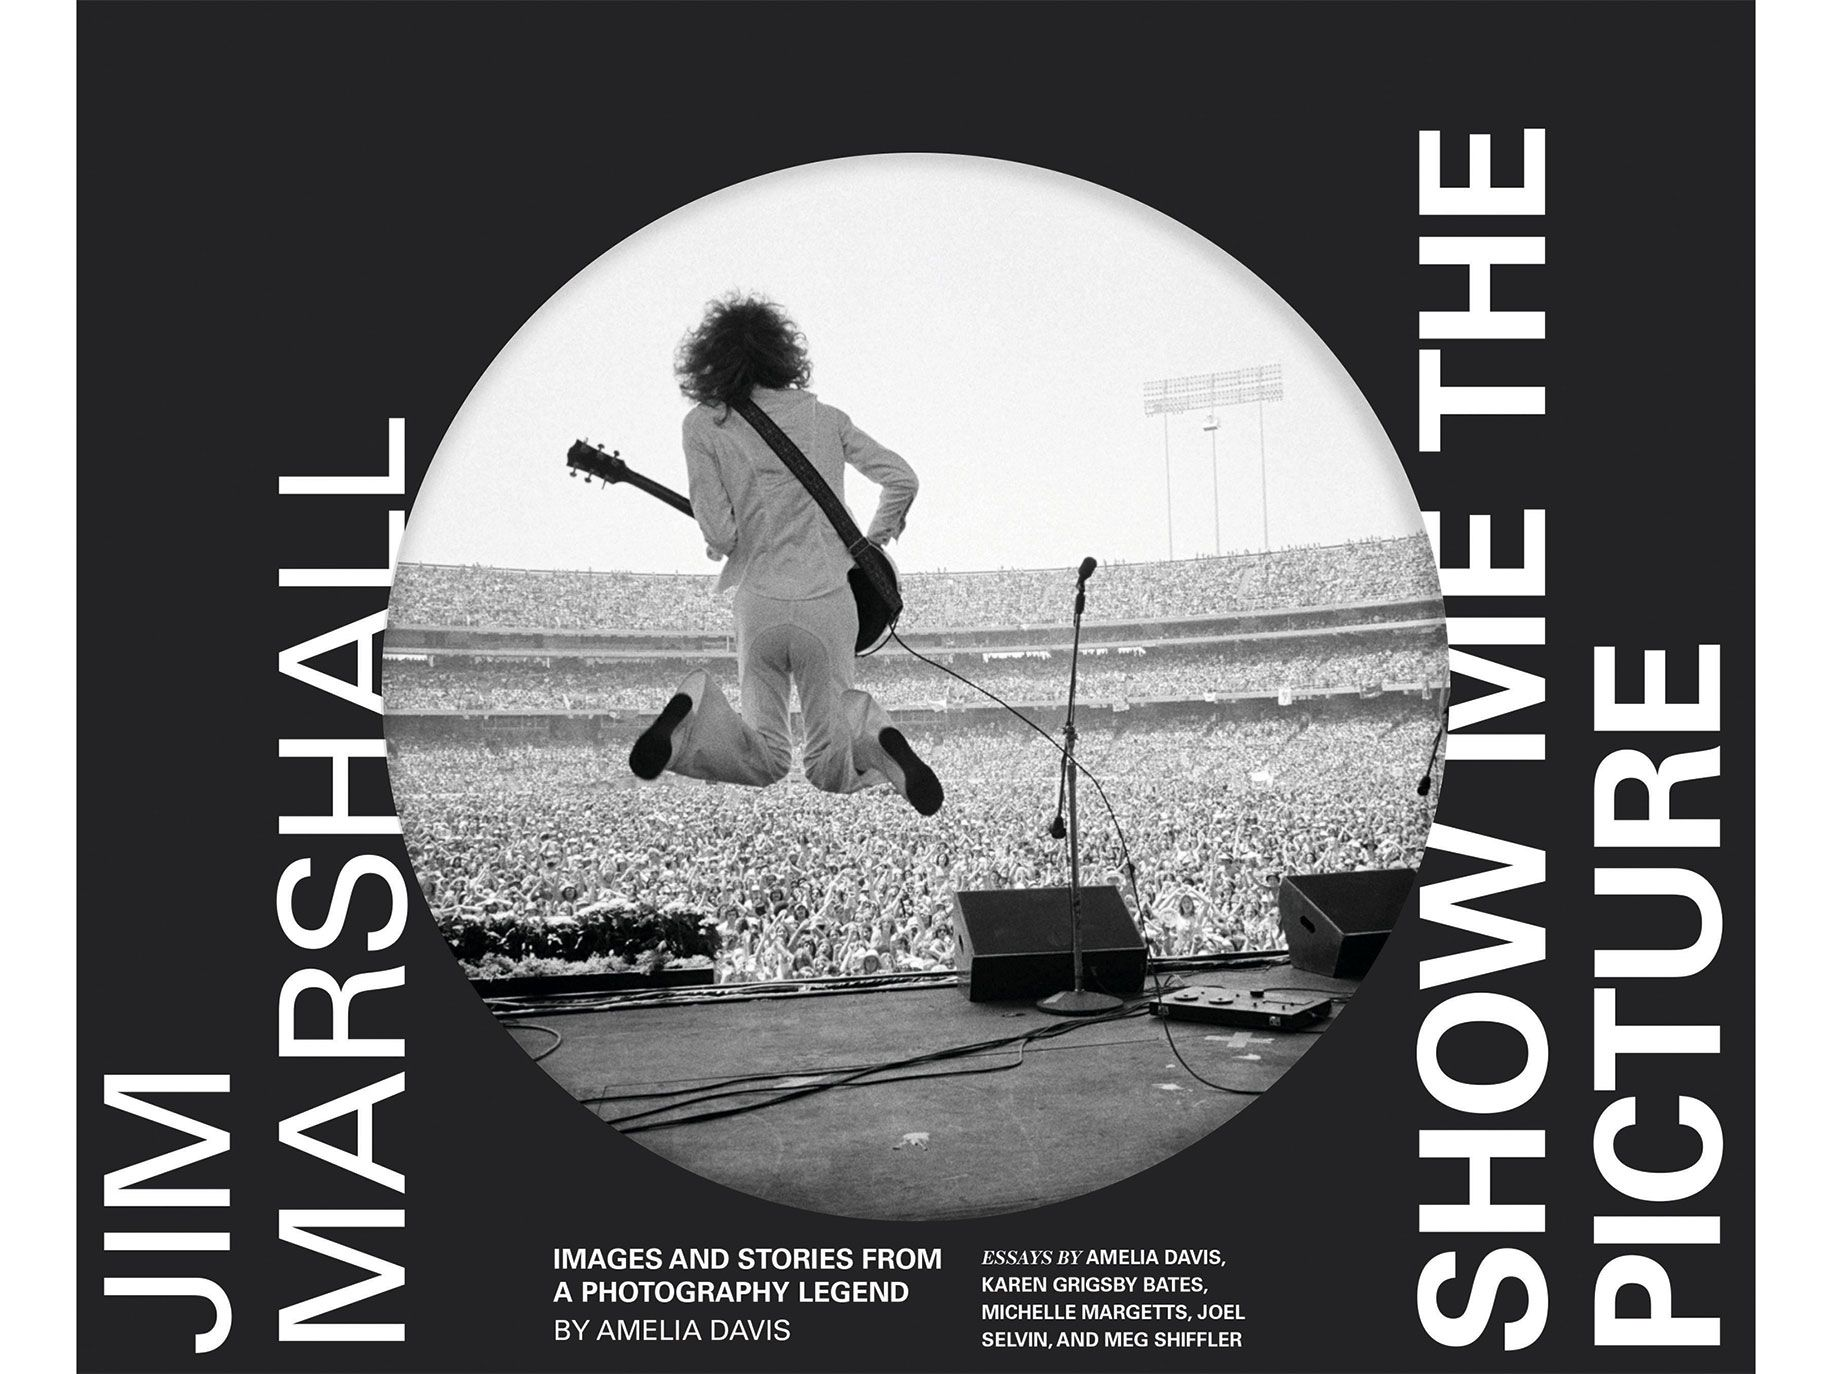 Jim Marshall: Show Me the Picture, by Amelia Davis, Chronicle Books, 228 pages, $55.